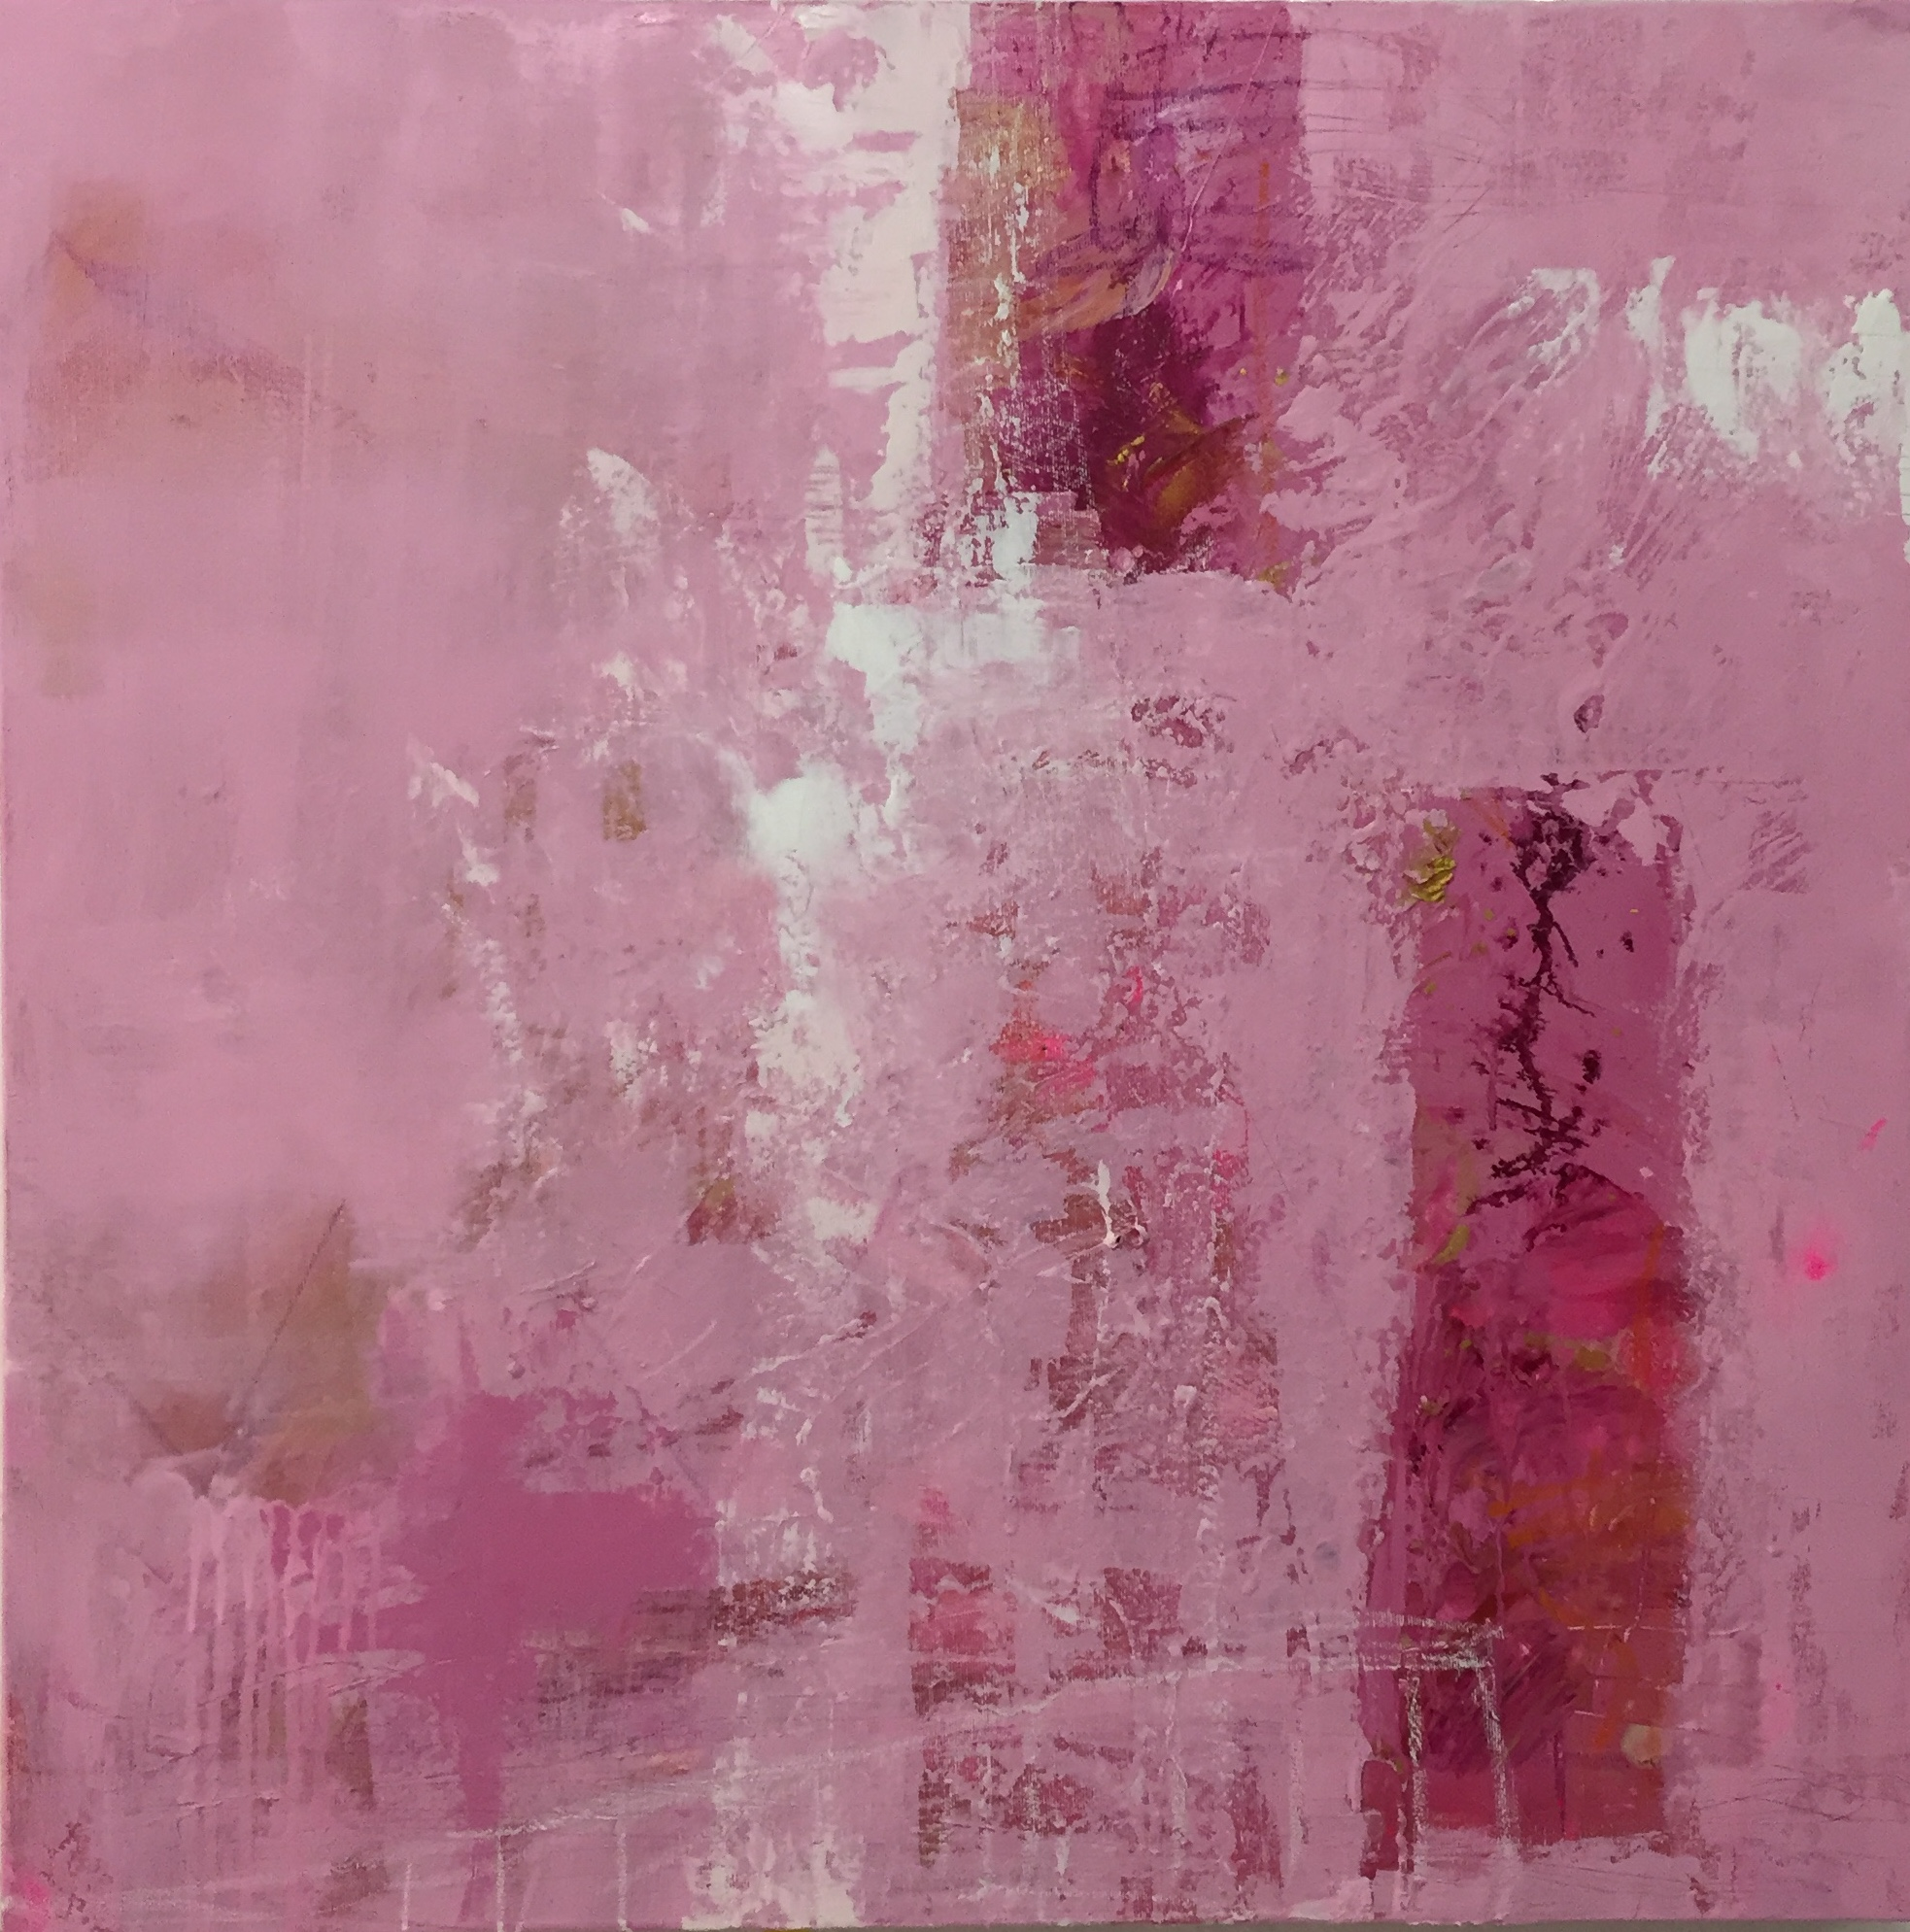 """ A LITTLE PIECE OF PINK "" 2019 Acryl/Leinwand 80x80"